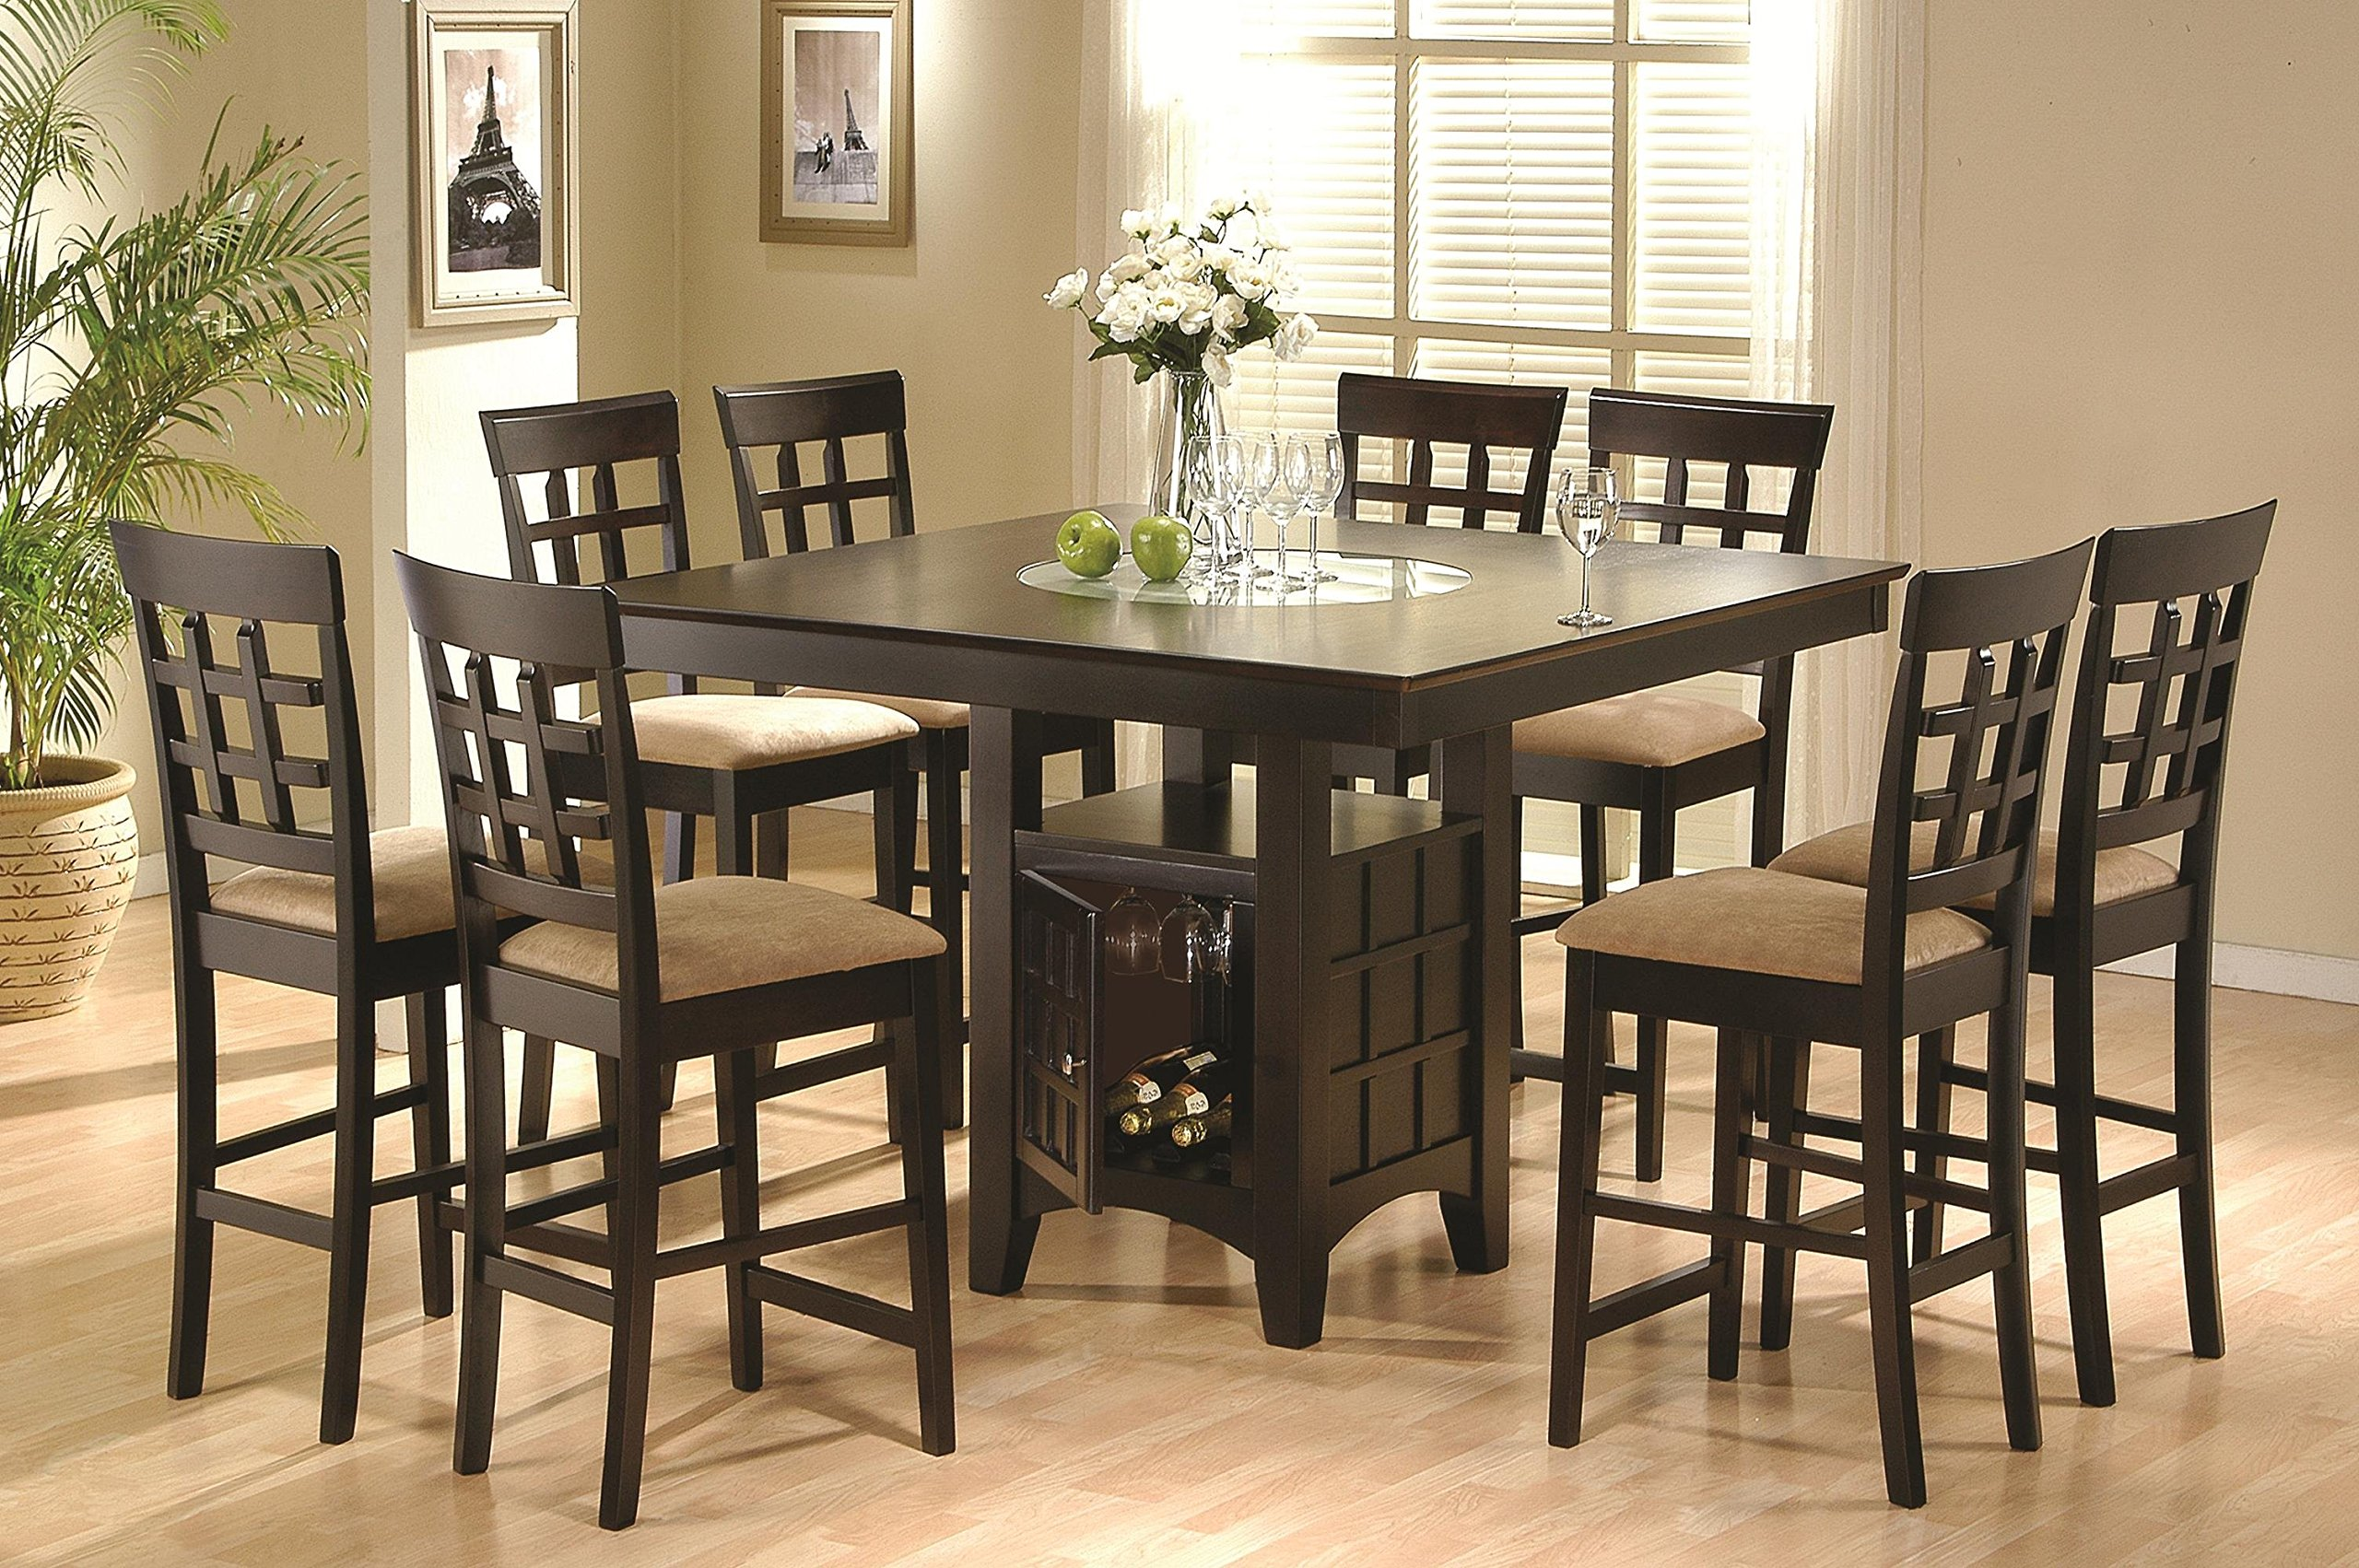 Coaster Hyde 9 Piece Counter Height Dining Set in Cappuccino by Coaster Home Furnishings